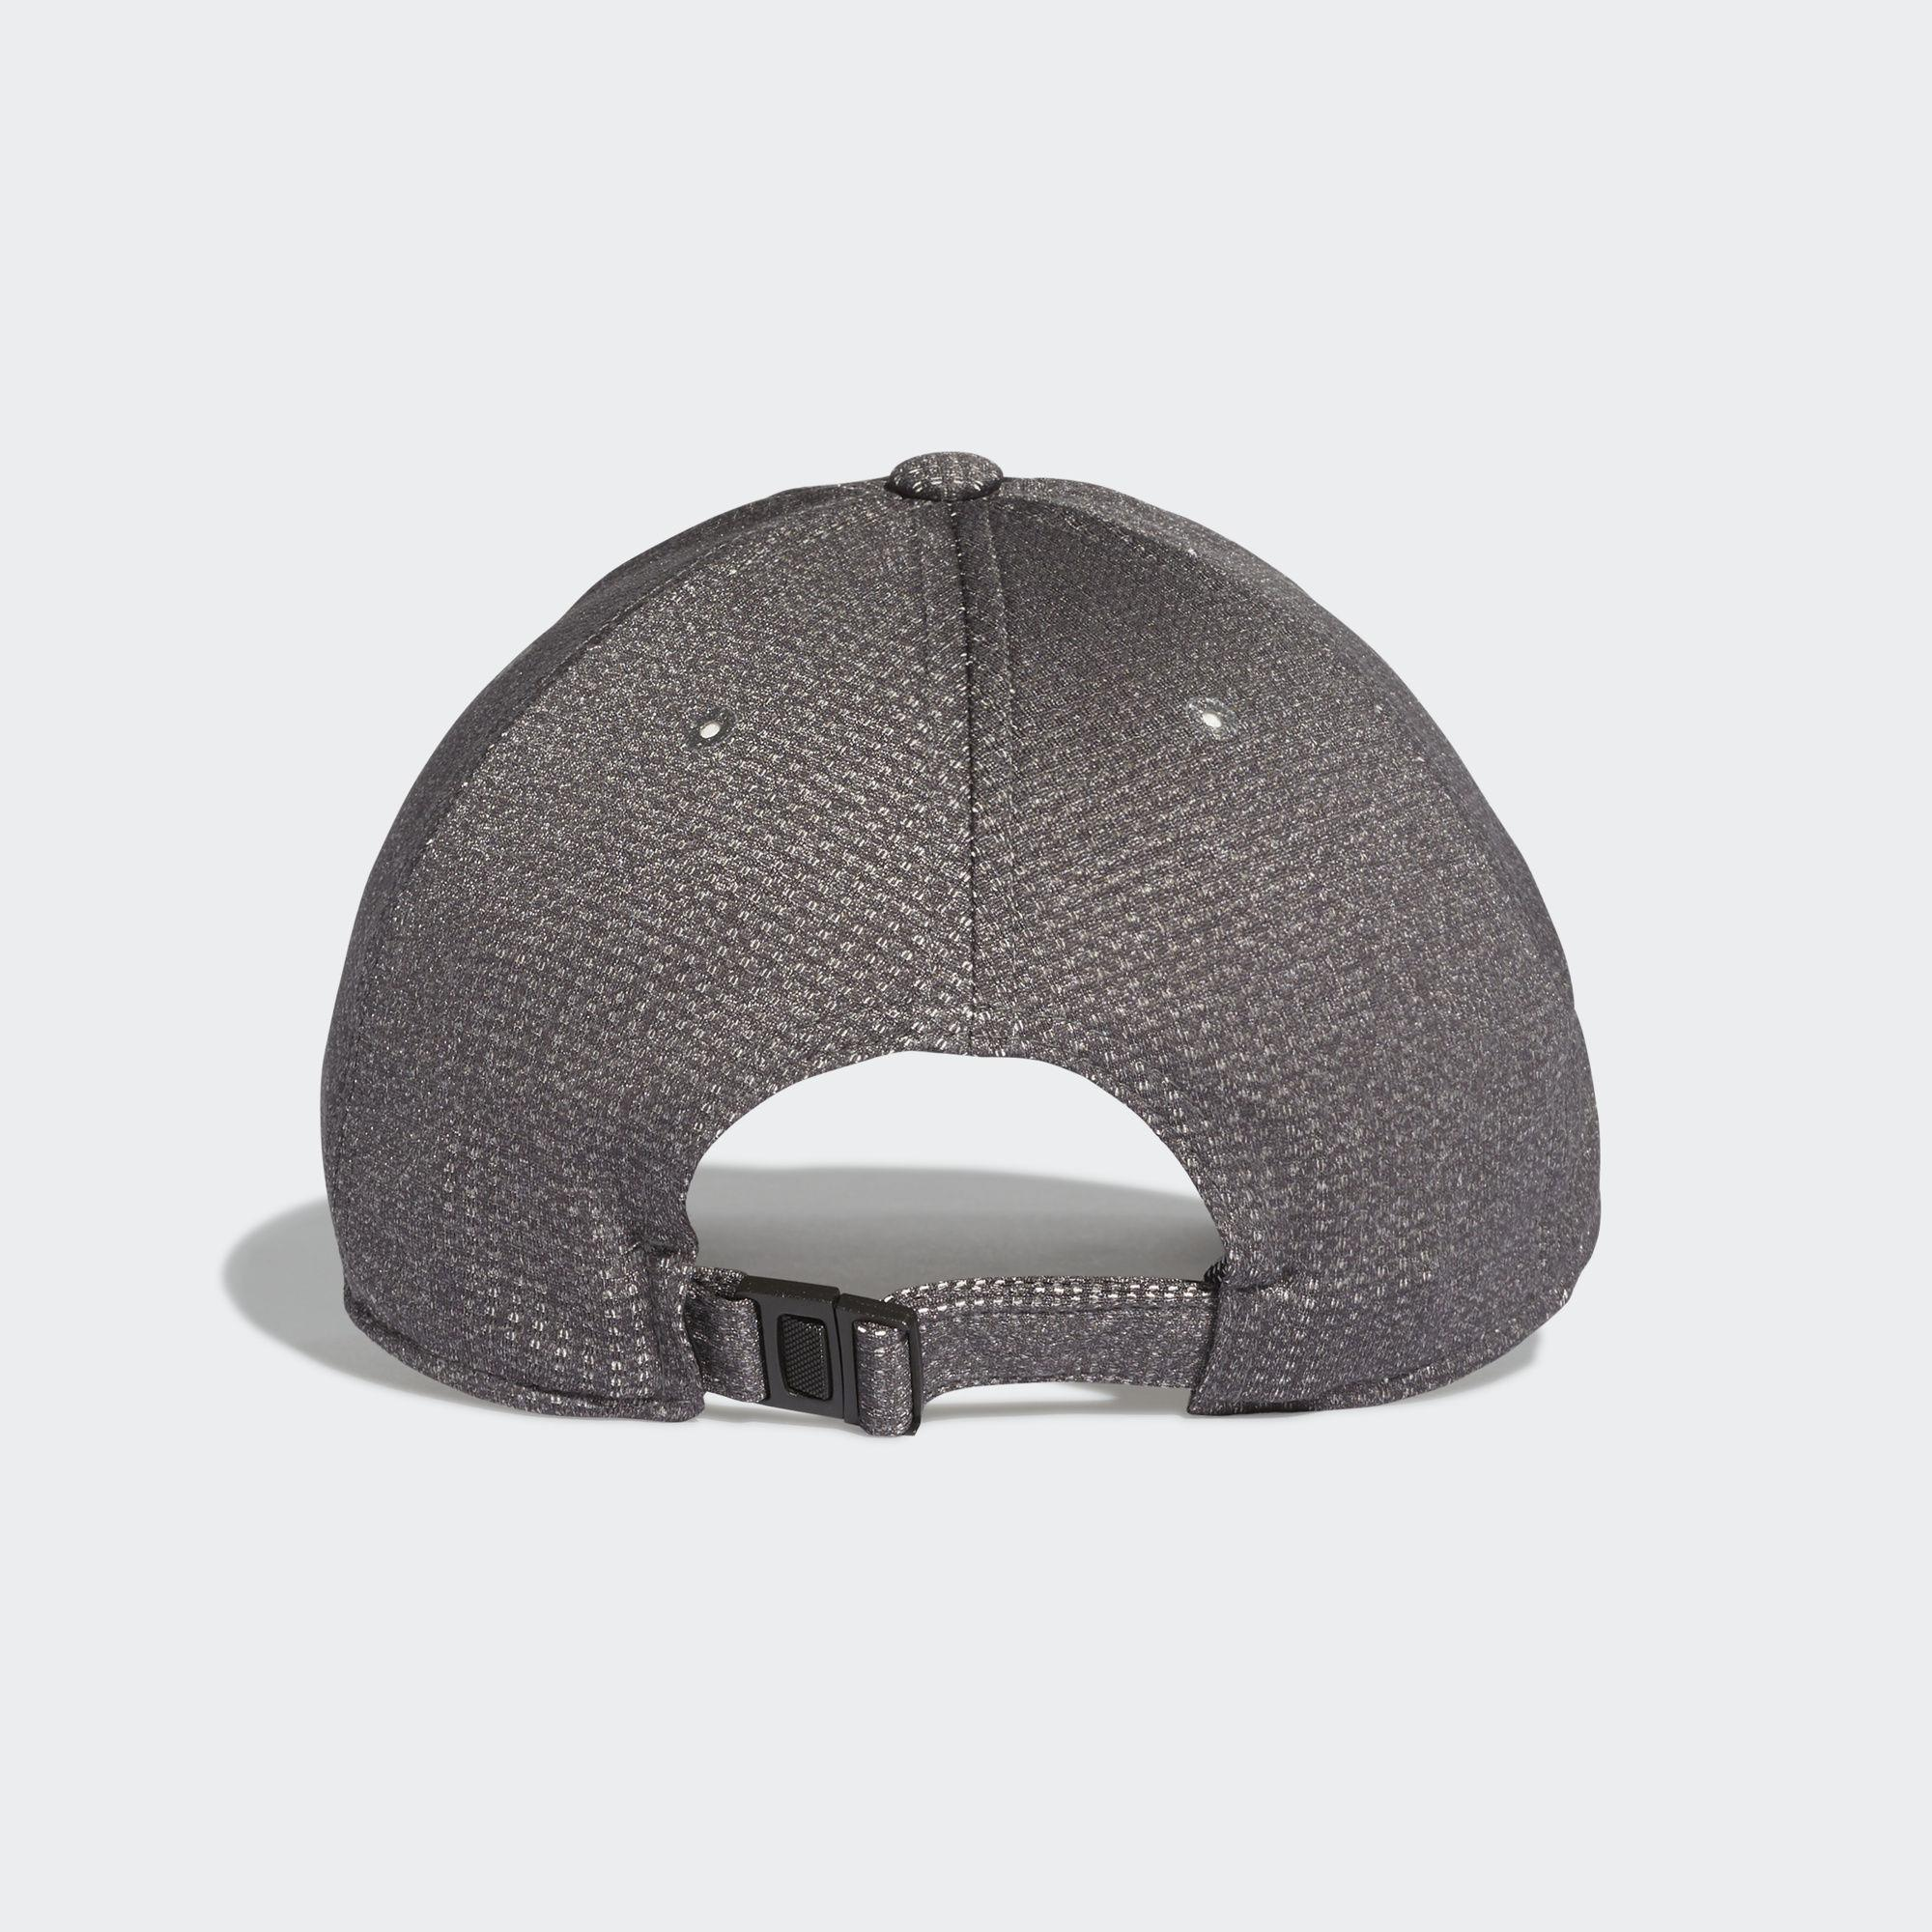 adidas C40 Climachill Cap in Gray for Men - Lyst 03be4b730db